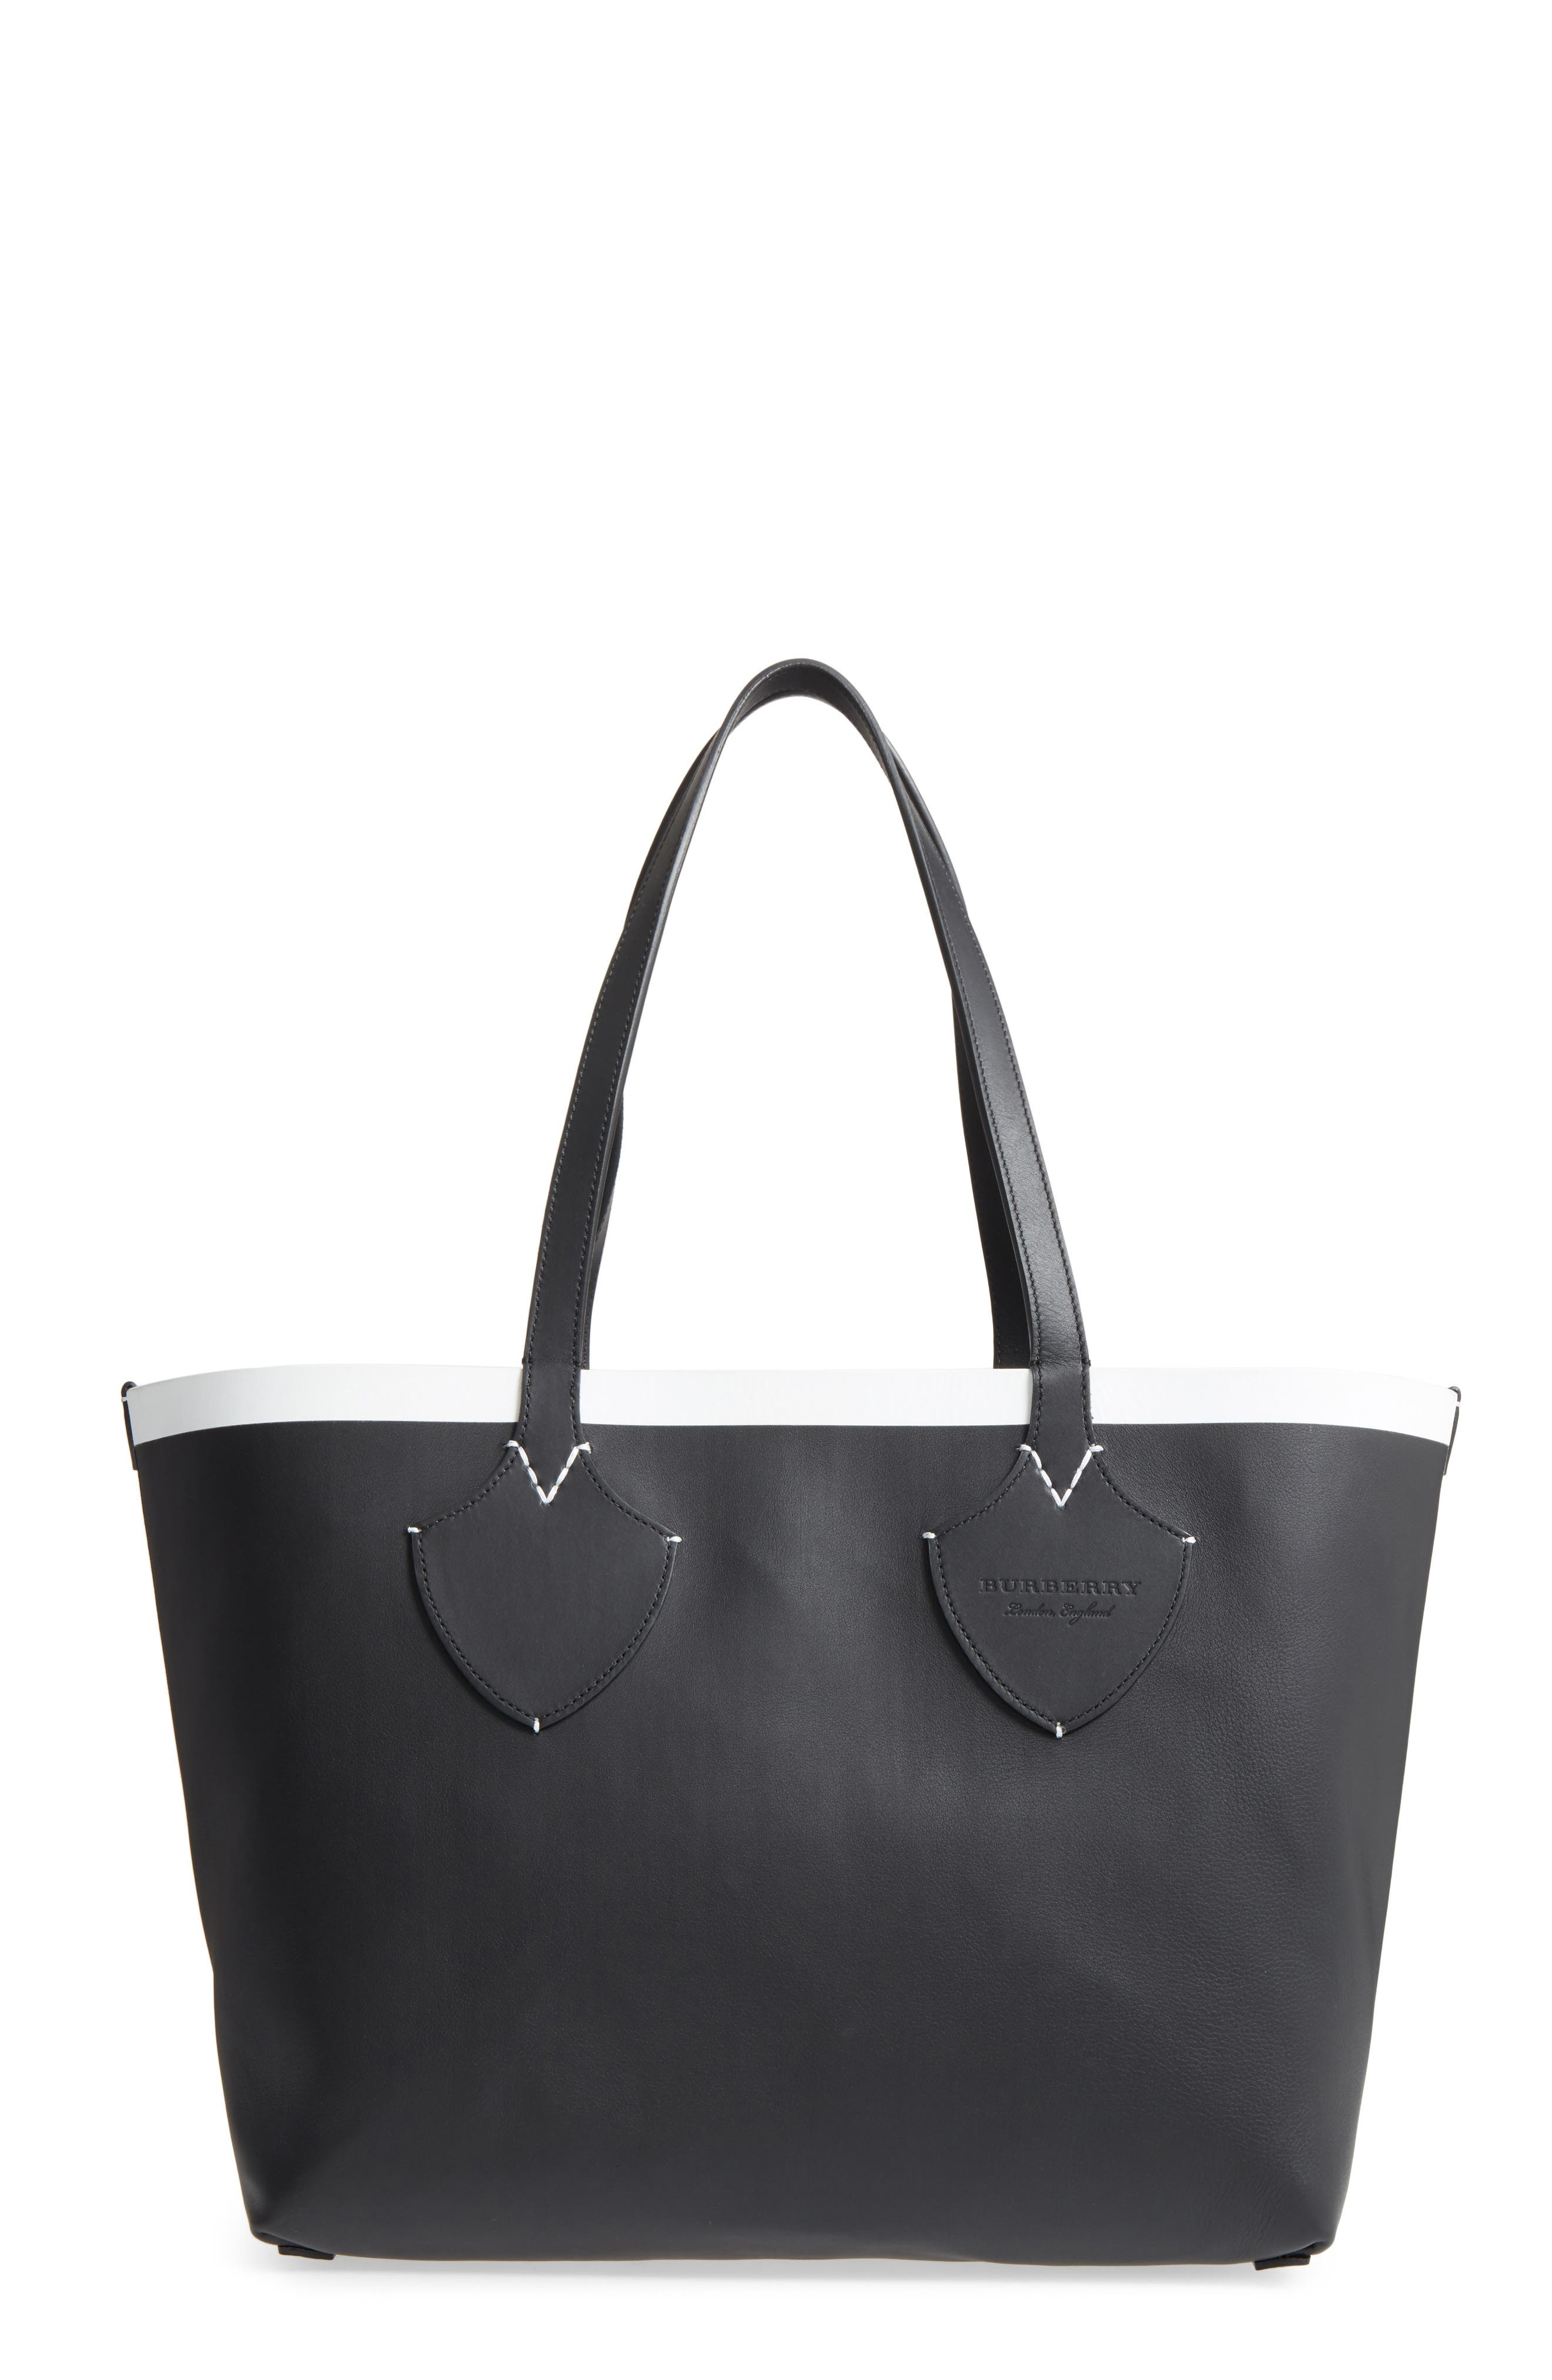 Alternate Image 1 Selected - Burberry Medium Reversible Leather & Check Canvas Tote